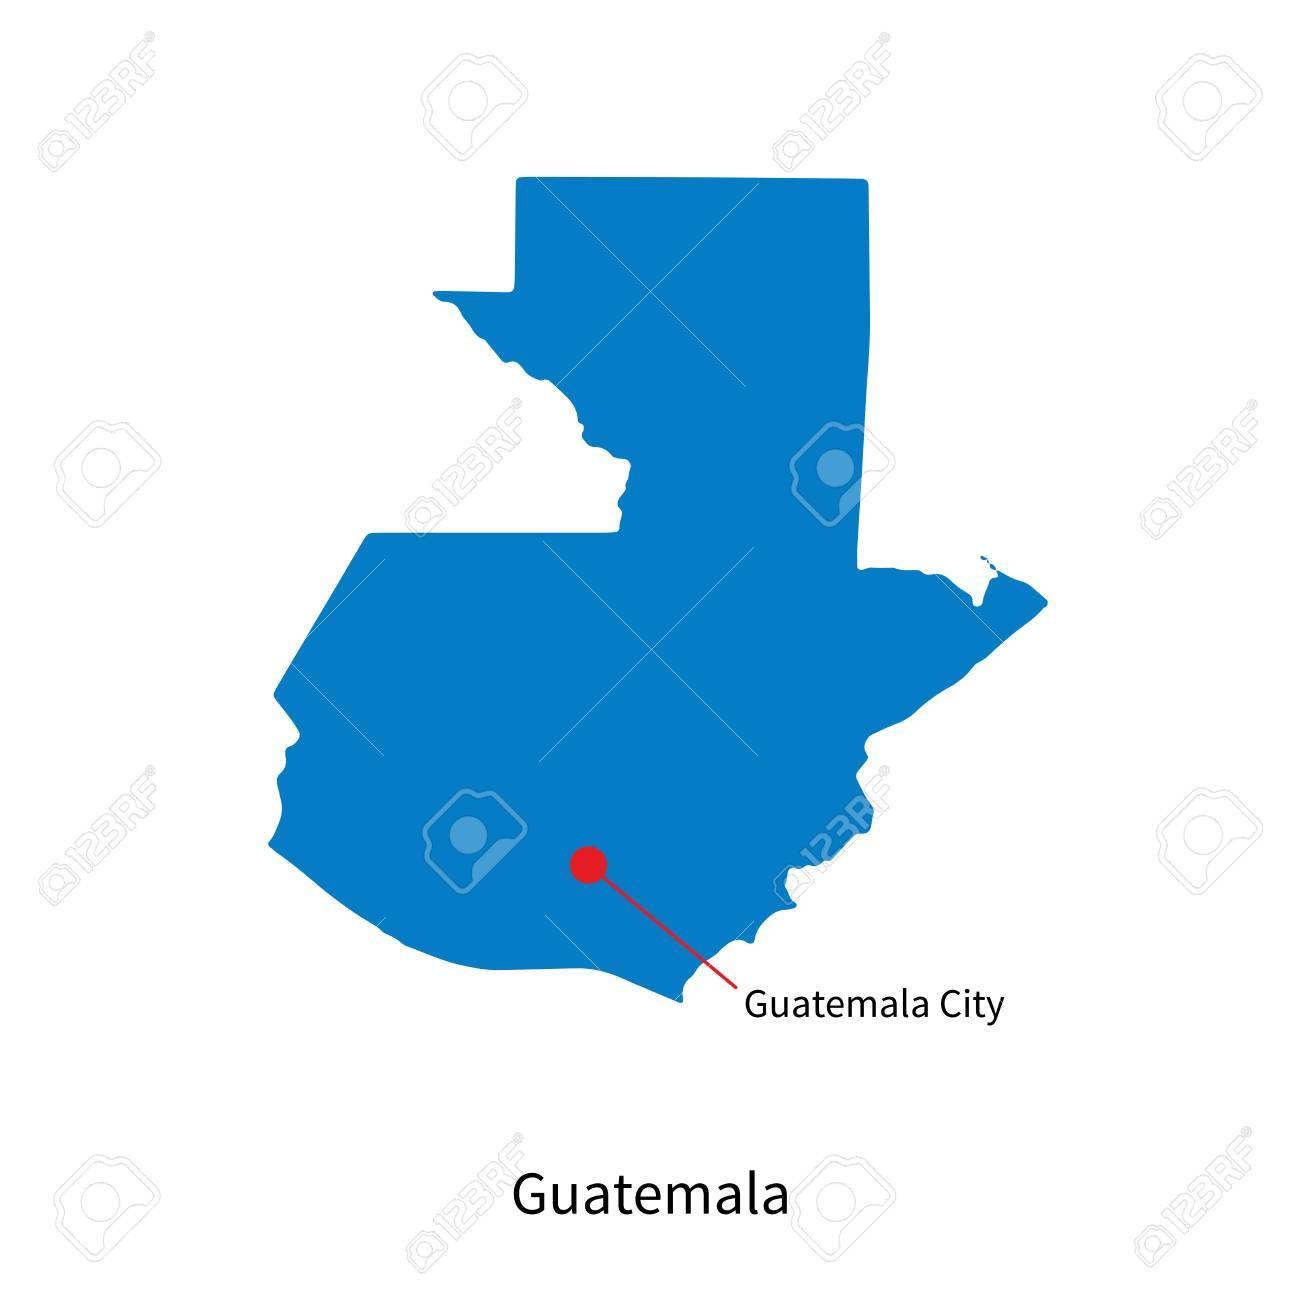 Picture of: Detailed Map Of Guatemala And Capital City Guatemala City Royalty Free Cliparts Vectors And Stock Illustration Image 31103016